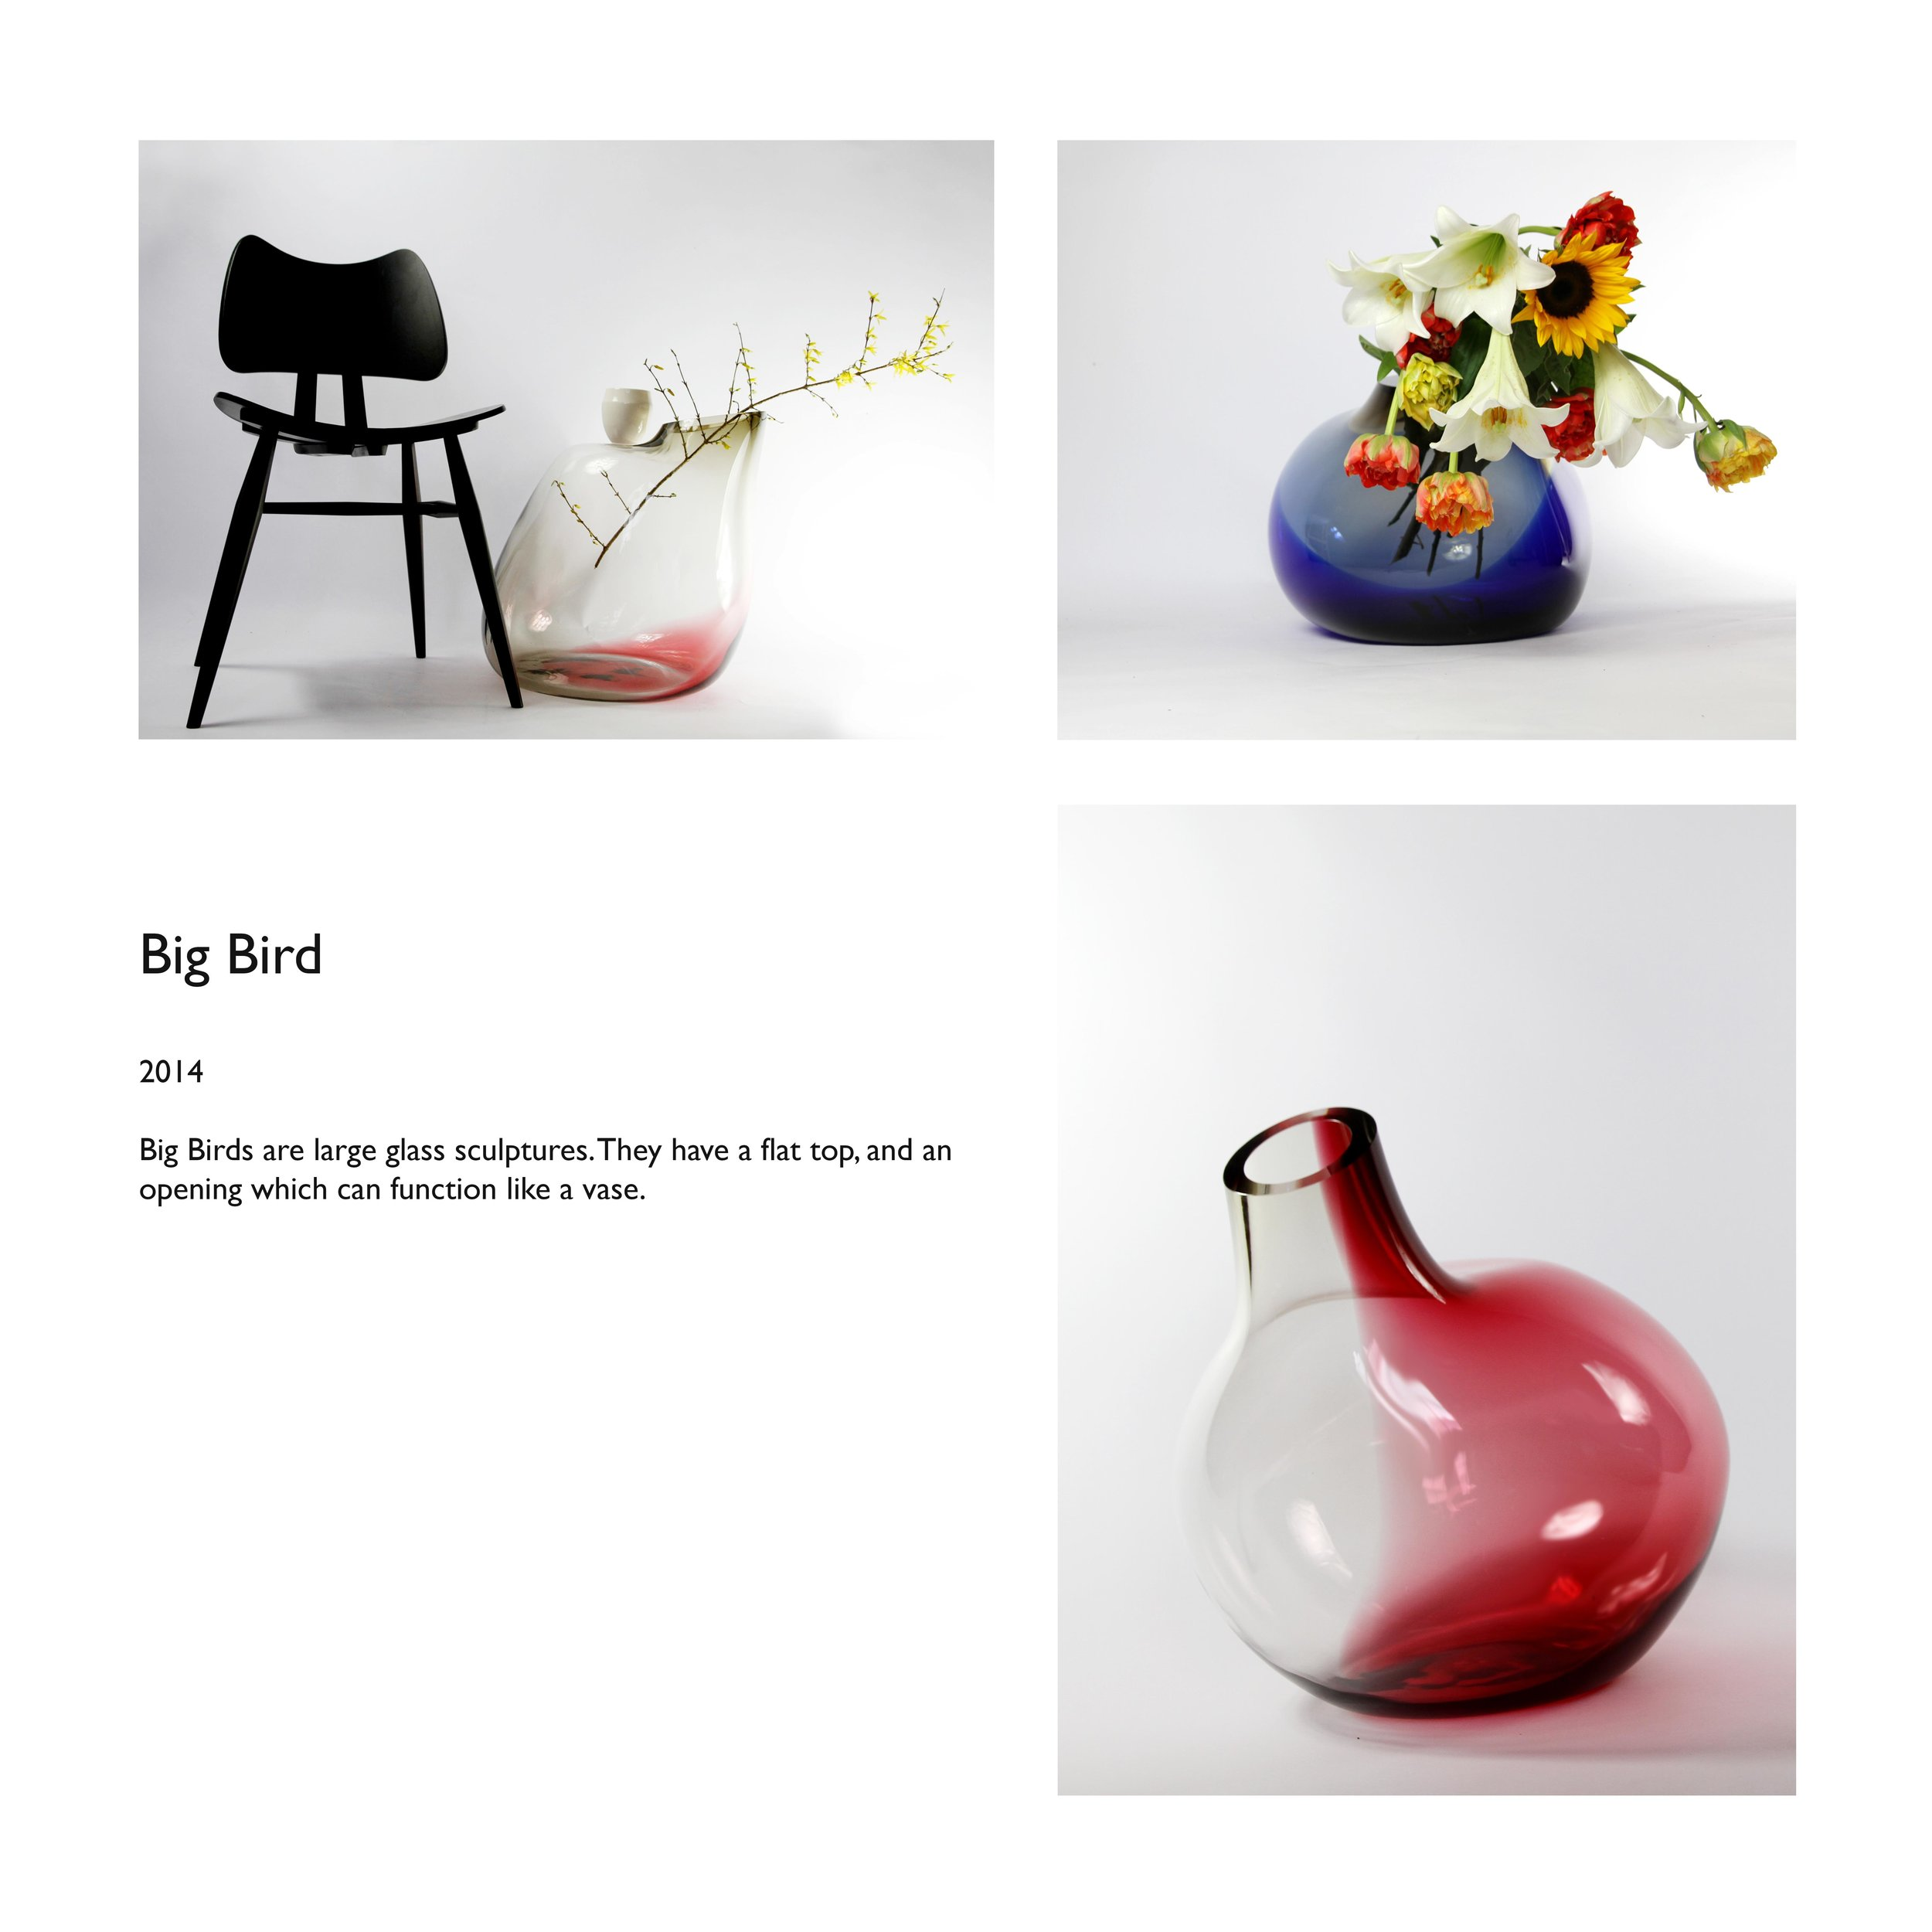 Big Bird mouthblown glass